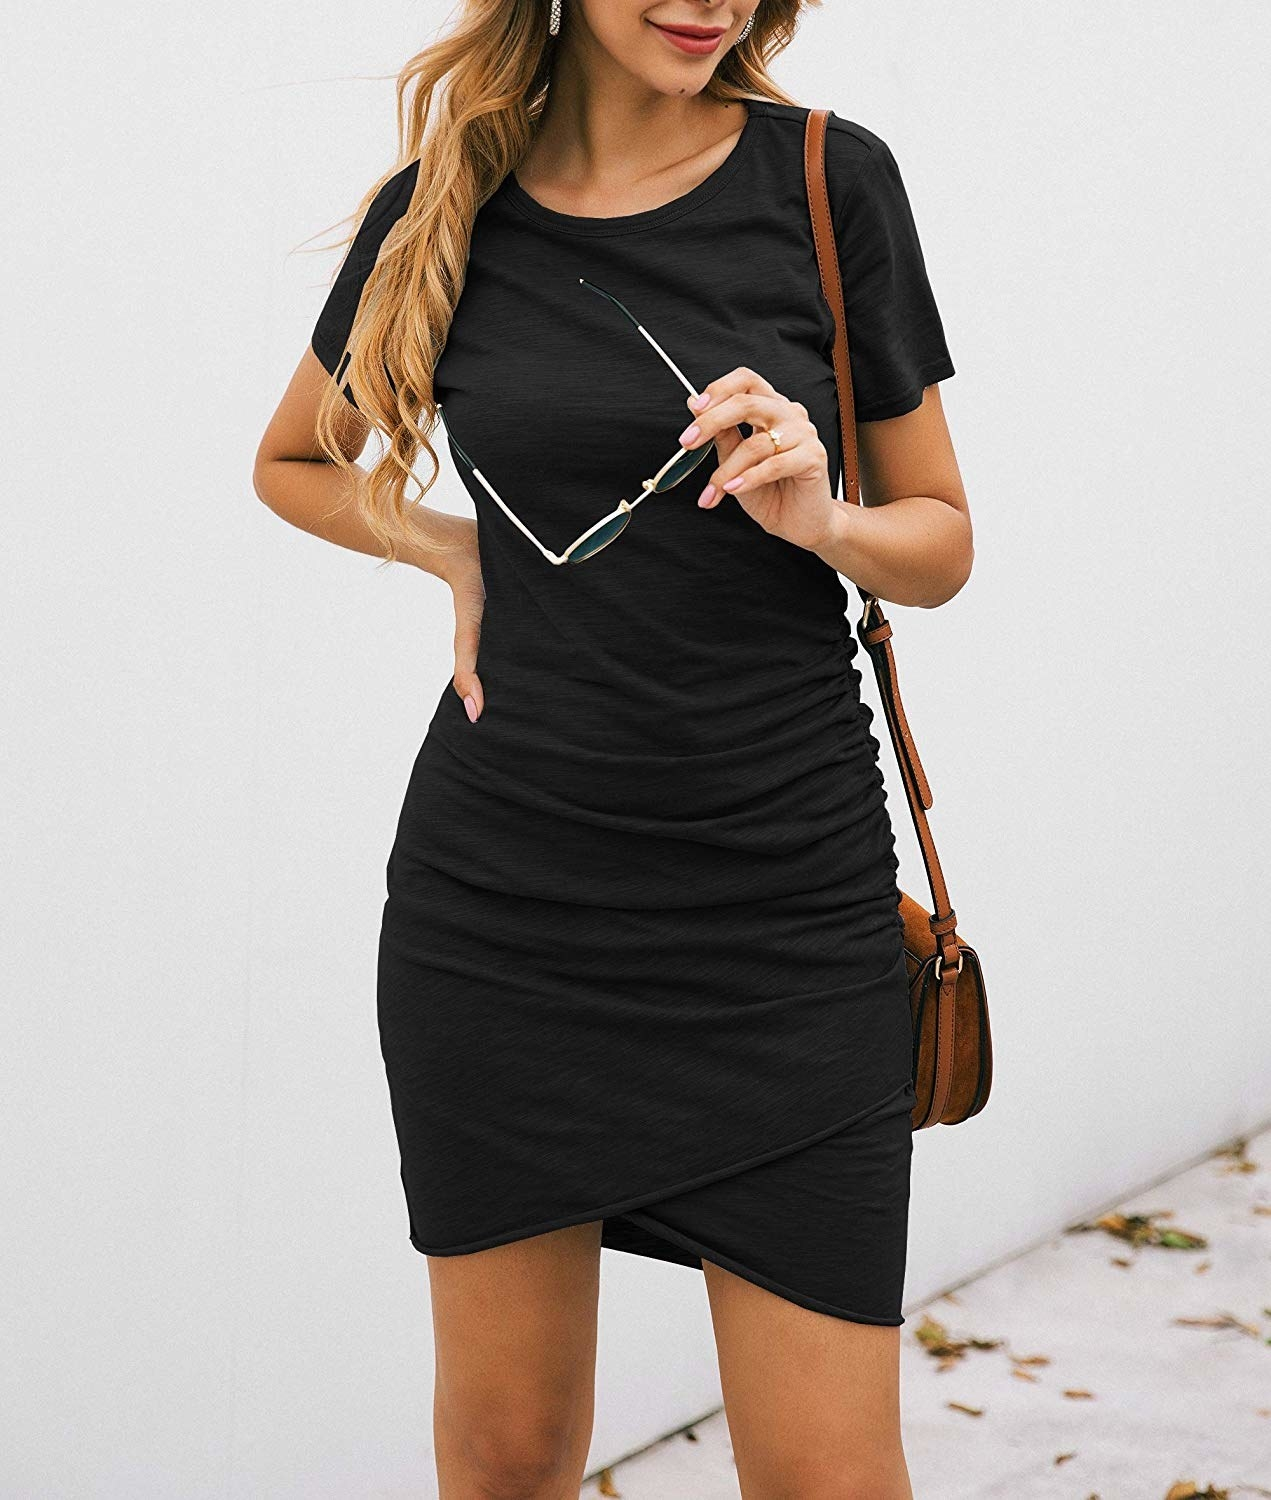 A model showing the black mini dress worn with a crossbody bag and sunglasses